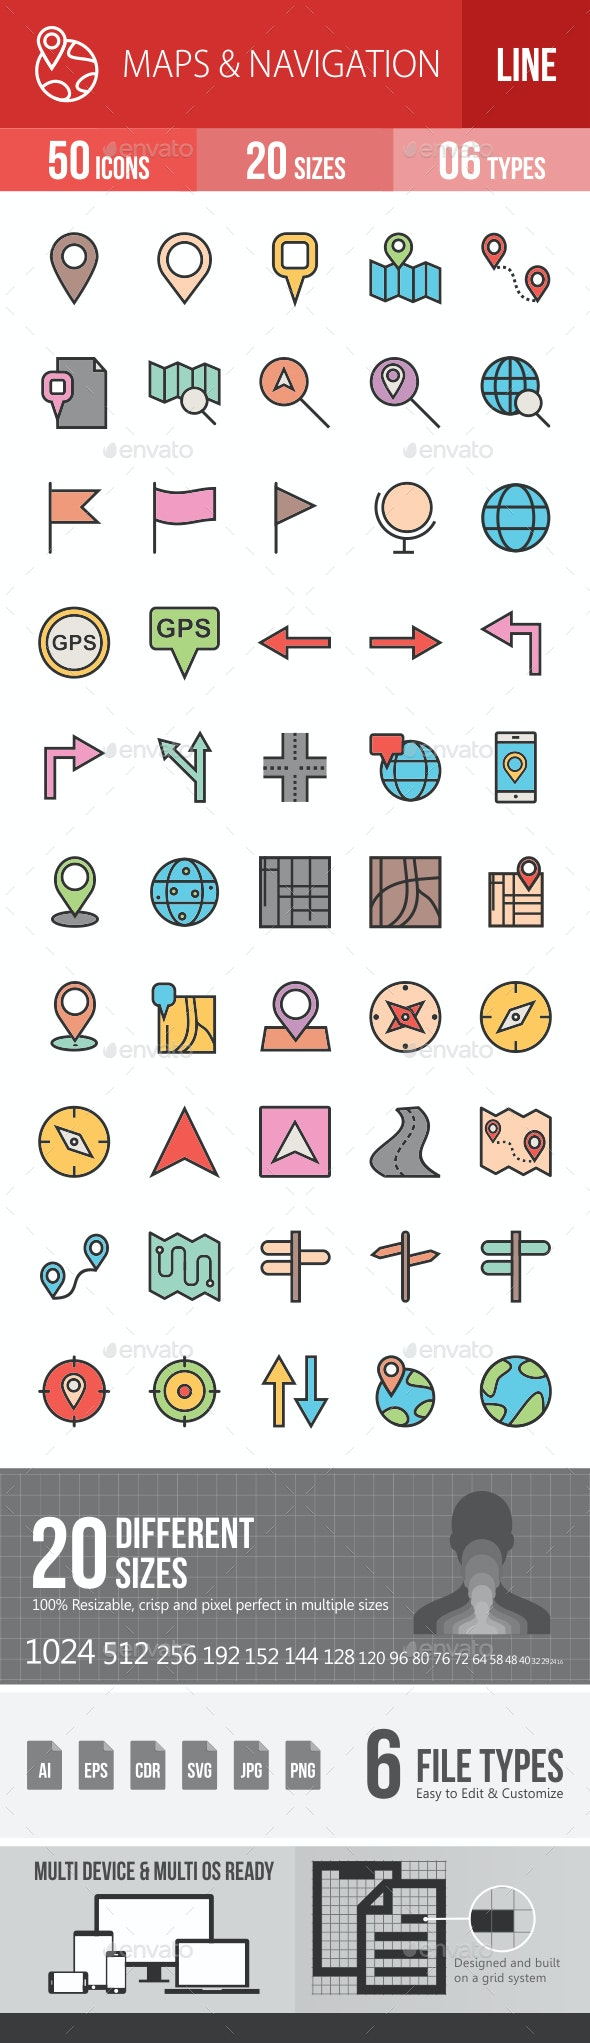 Maps & Navigation Filled Line Icons - Icons